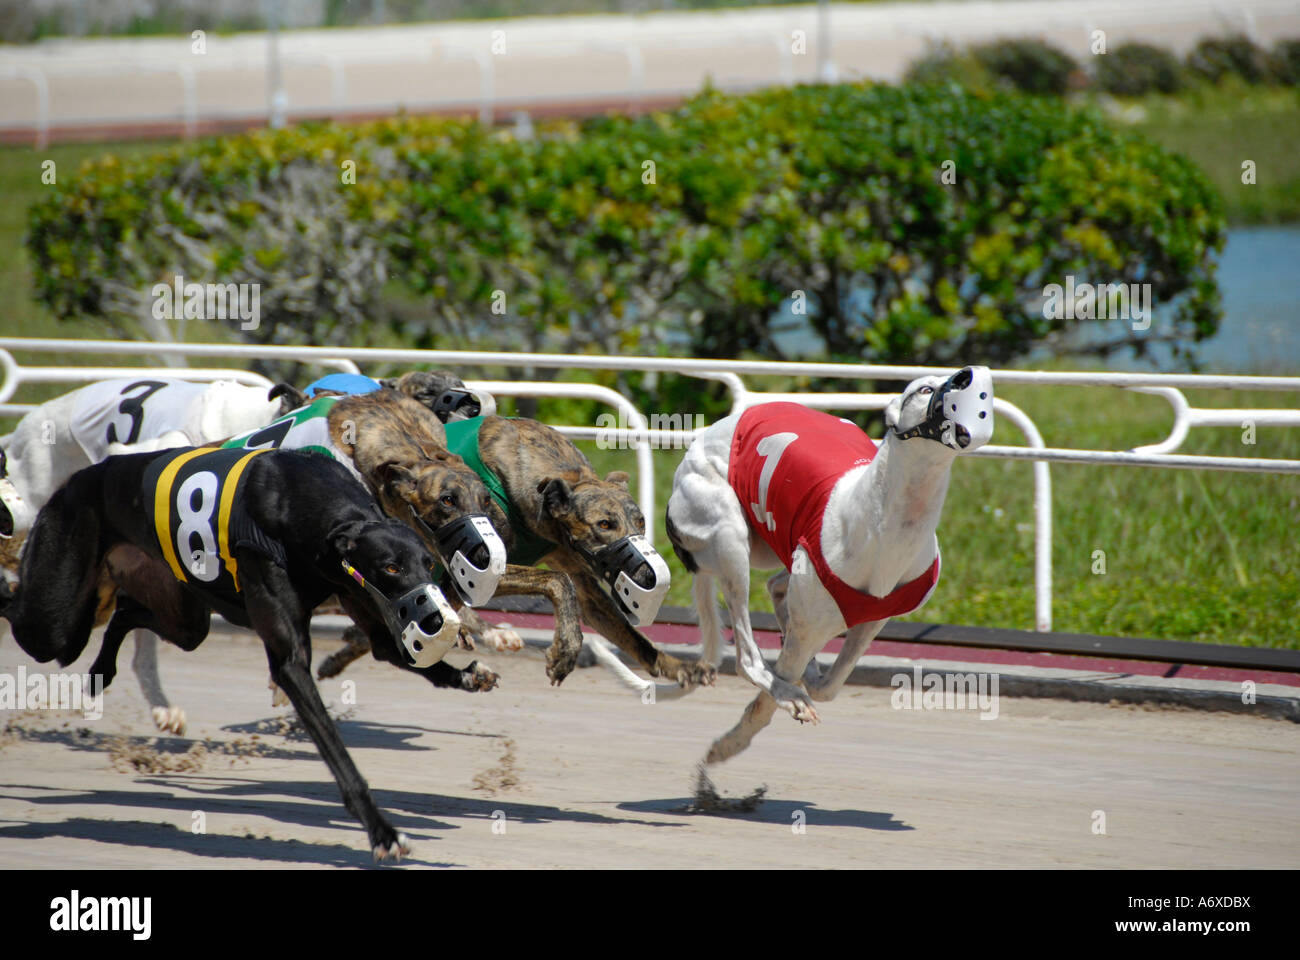 Greyhound dog racing at the Sarasota Florida FL Kennel Club - Stock Image